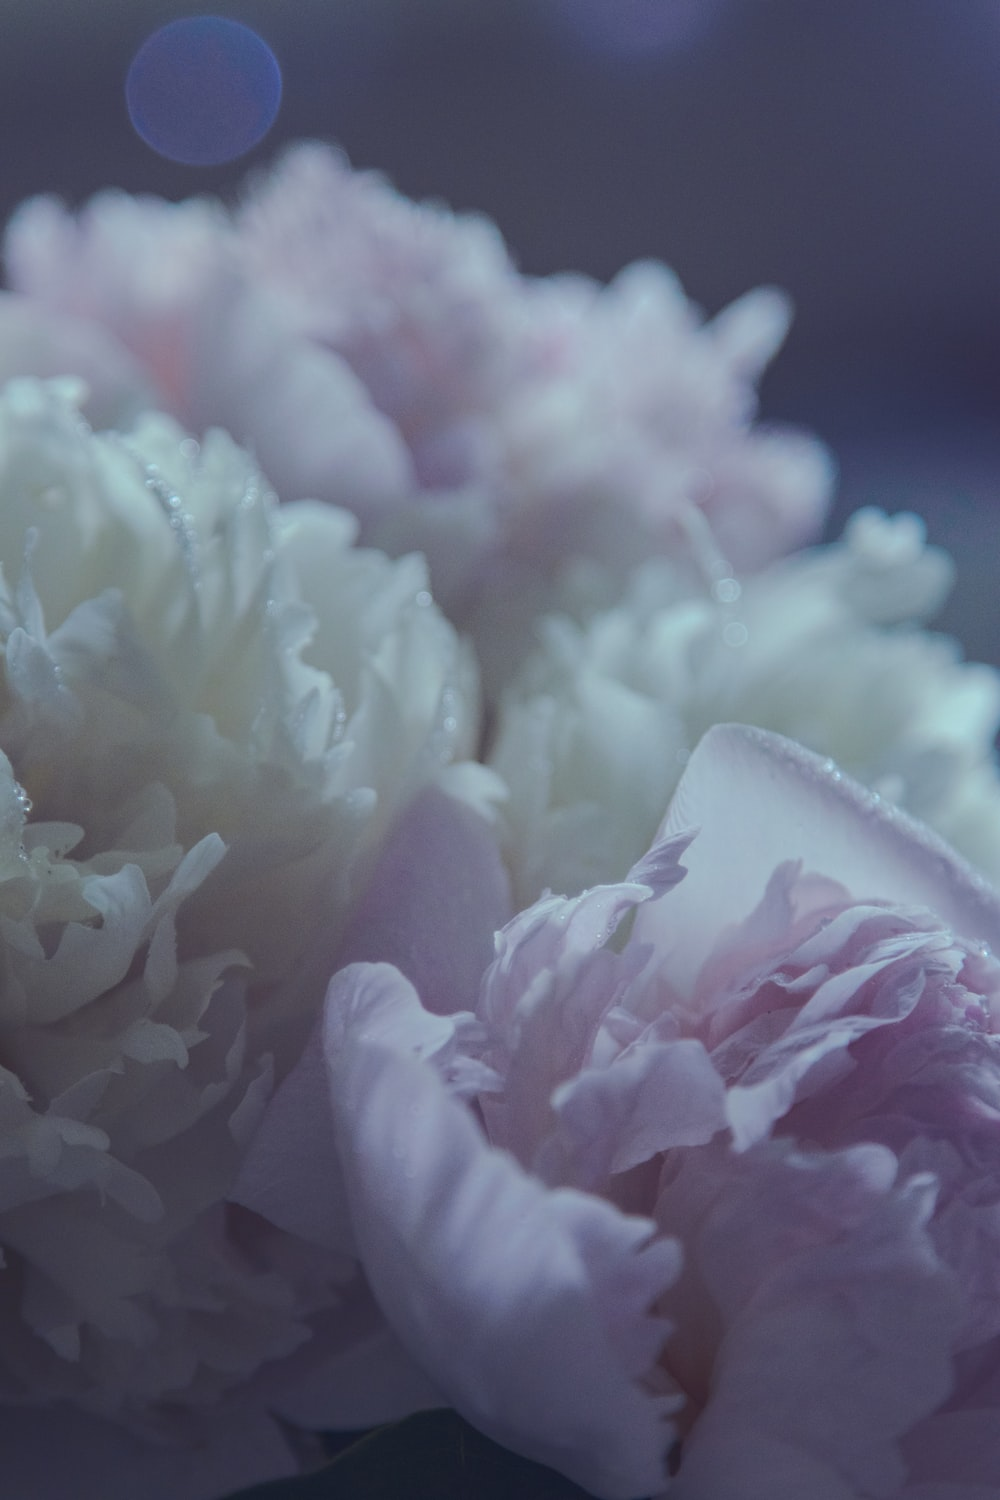 white and pink flower petals